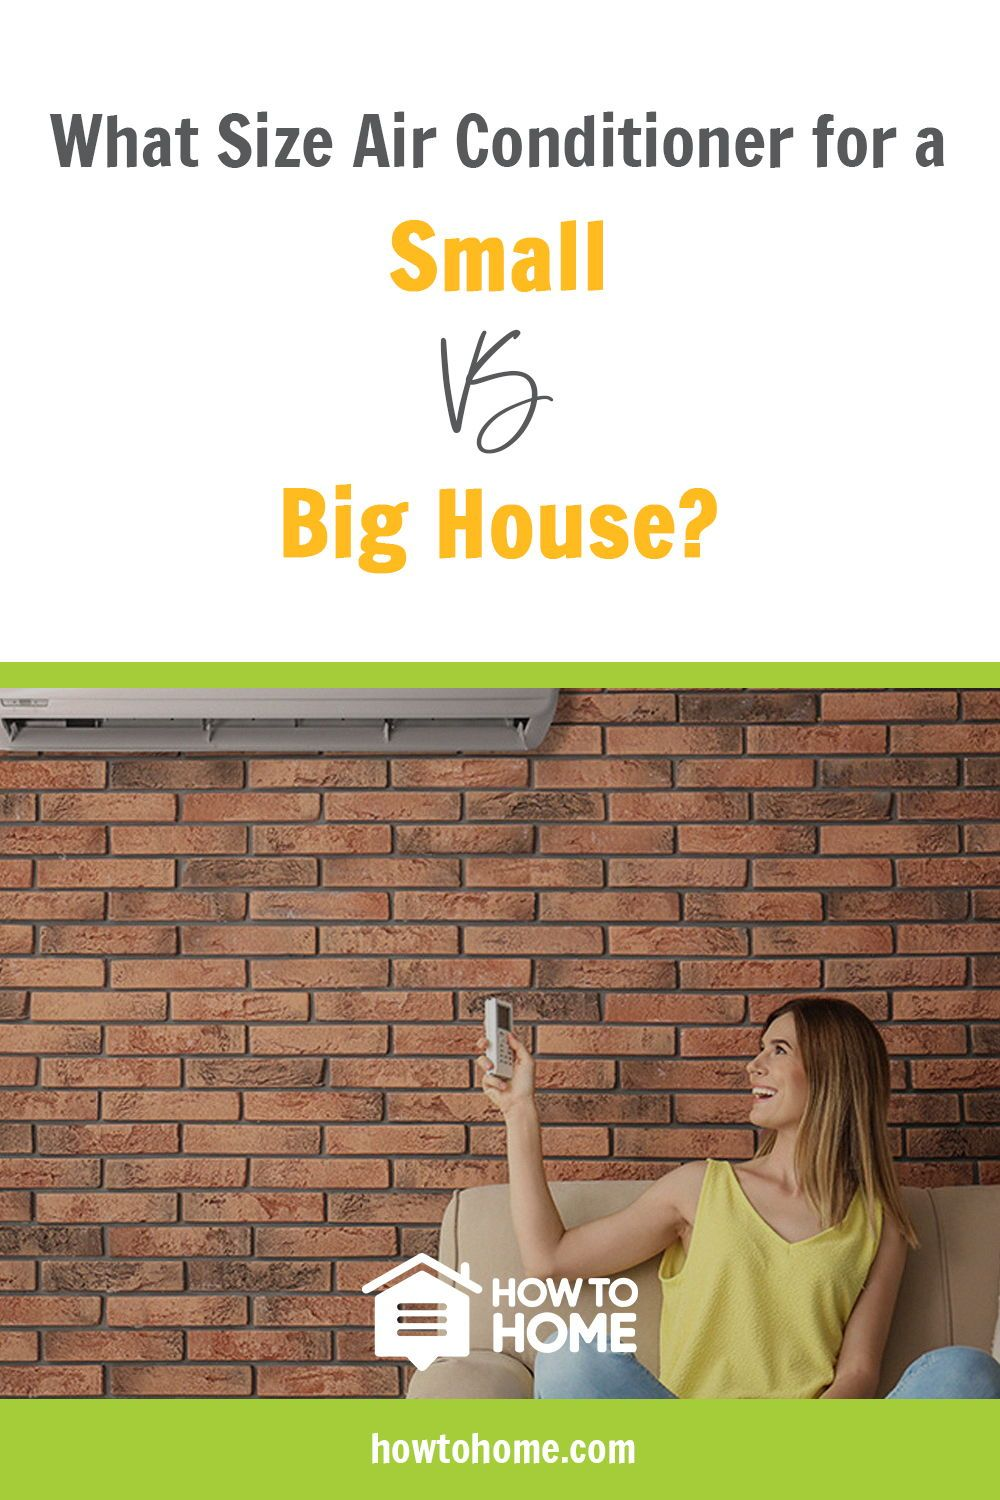 What Size Air Conditioner for a Small vs Big House? Air